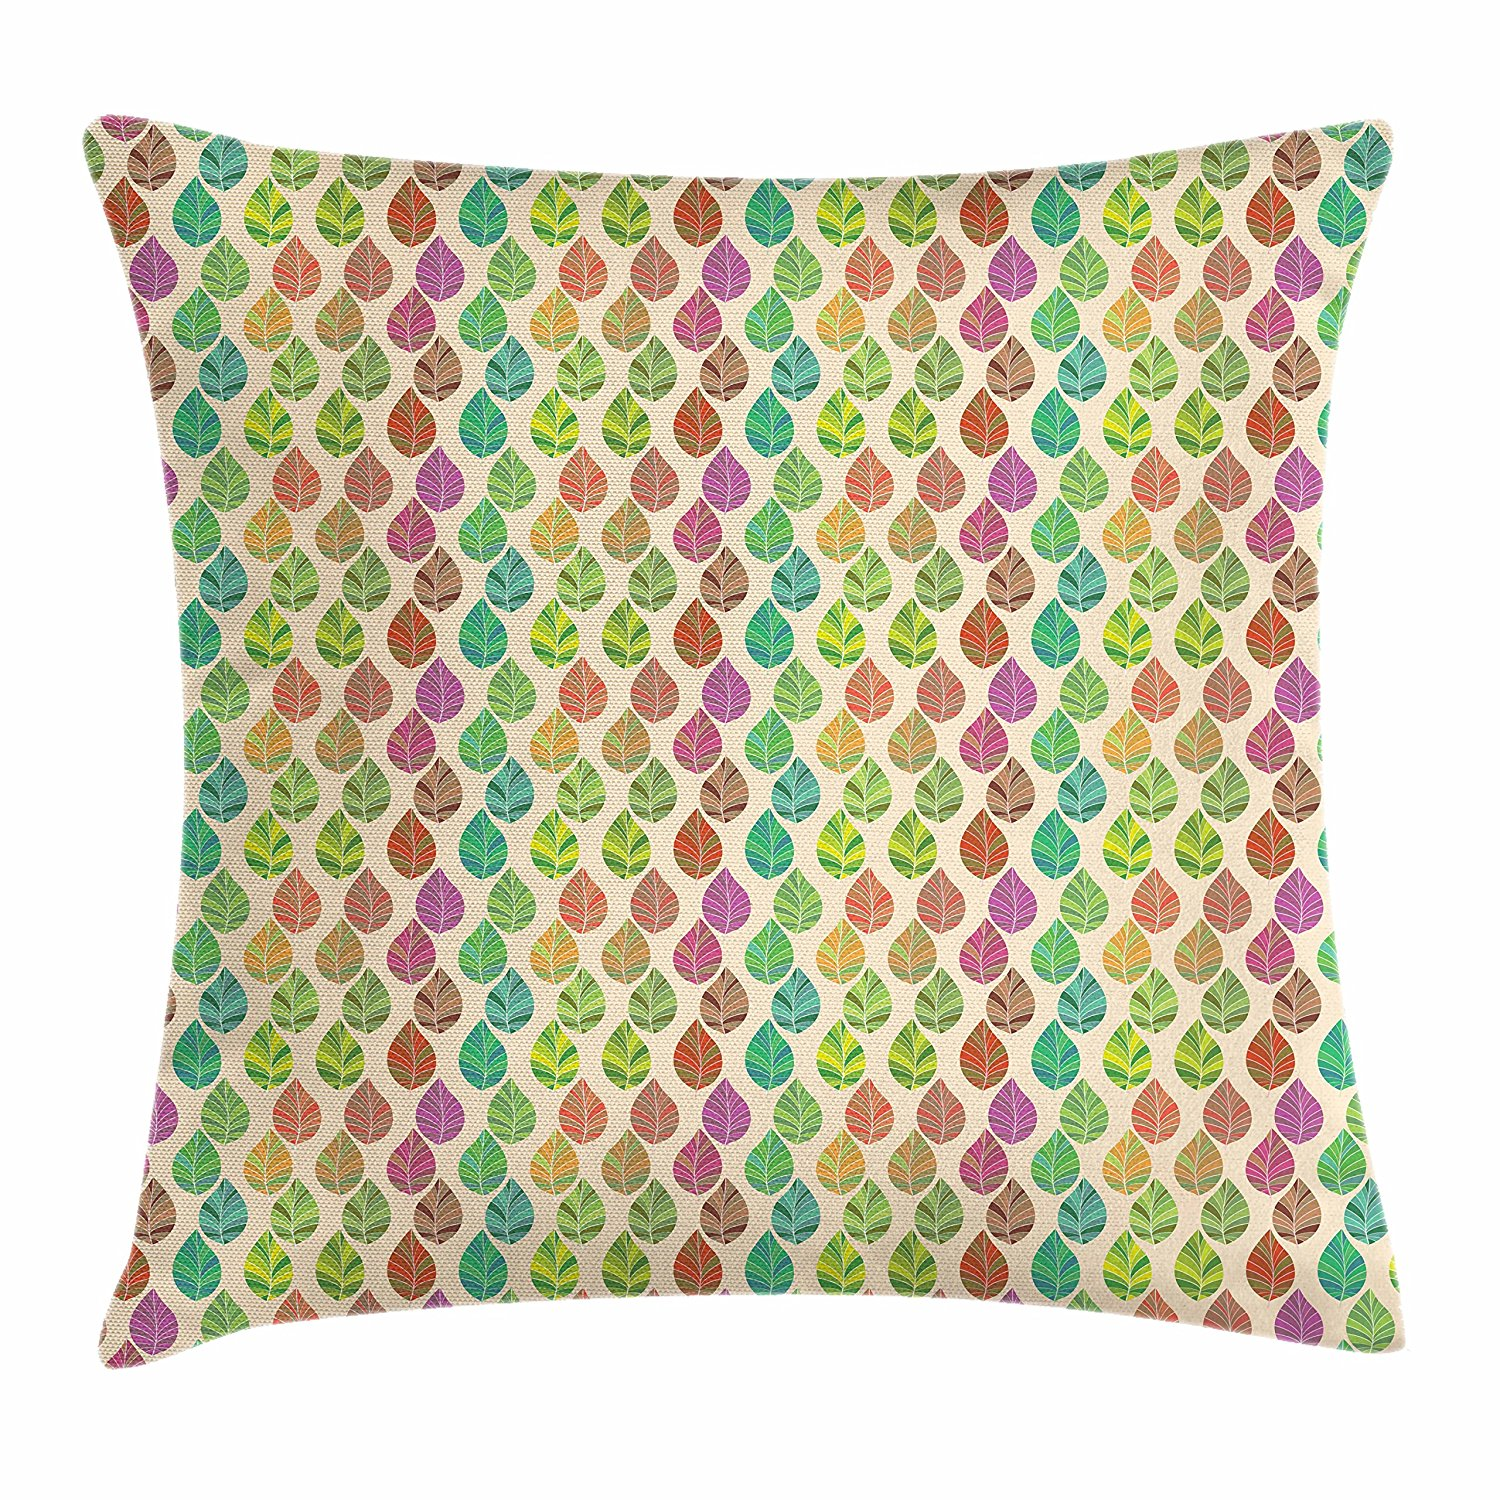 Ambesonne Leaves Throw Pillow Cushion Cover, Exotic Summer Season Nature Pattern Botanical Foliage Leaves Abstract Illustration, Decorative Square Accent Pillow Case, 24 X 24 Inches, Multicolor